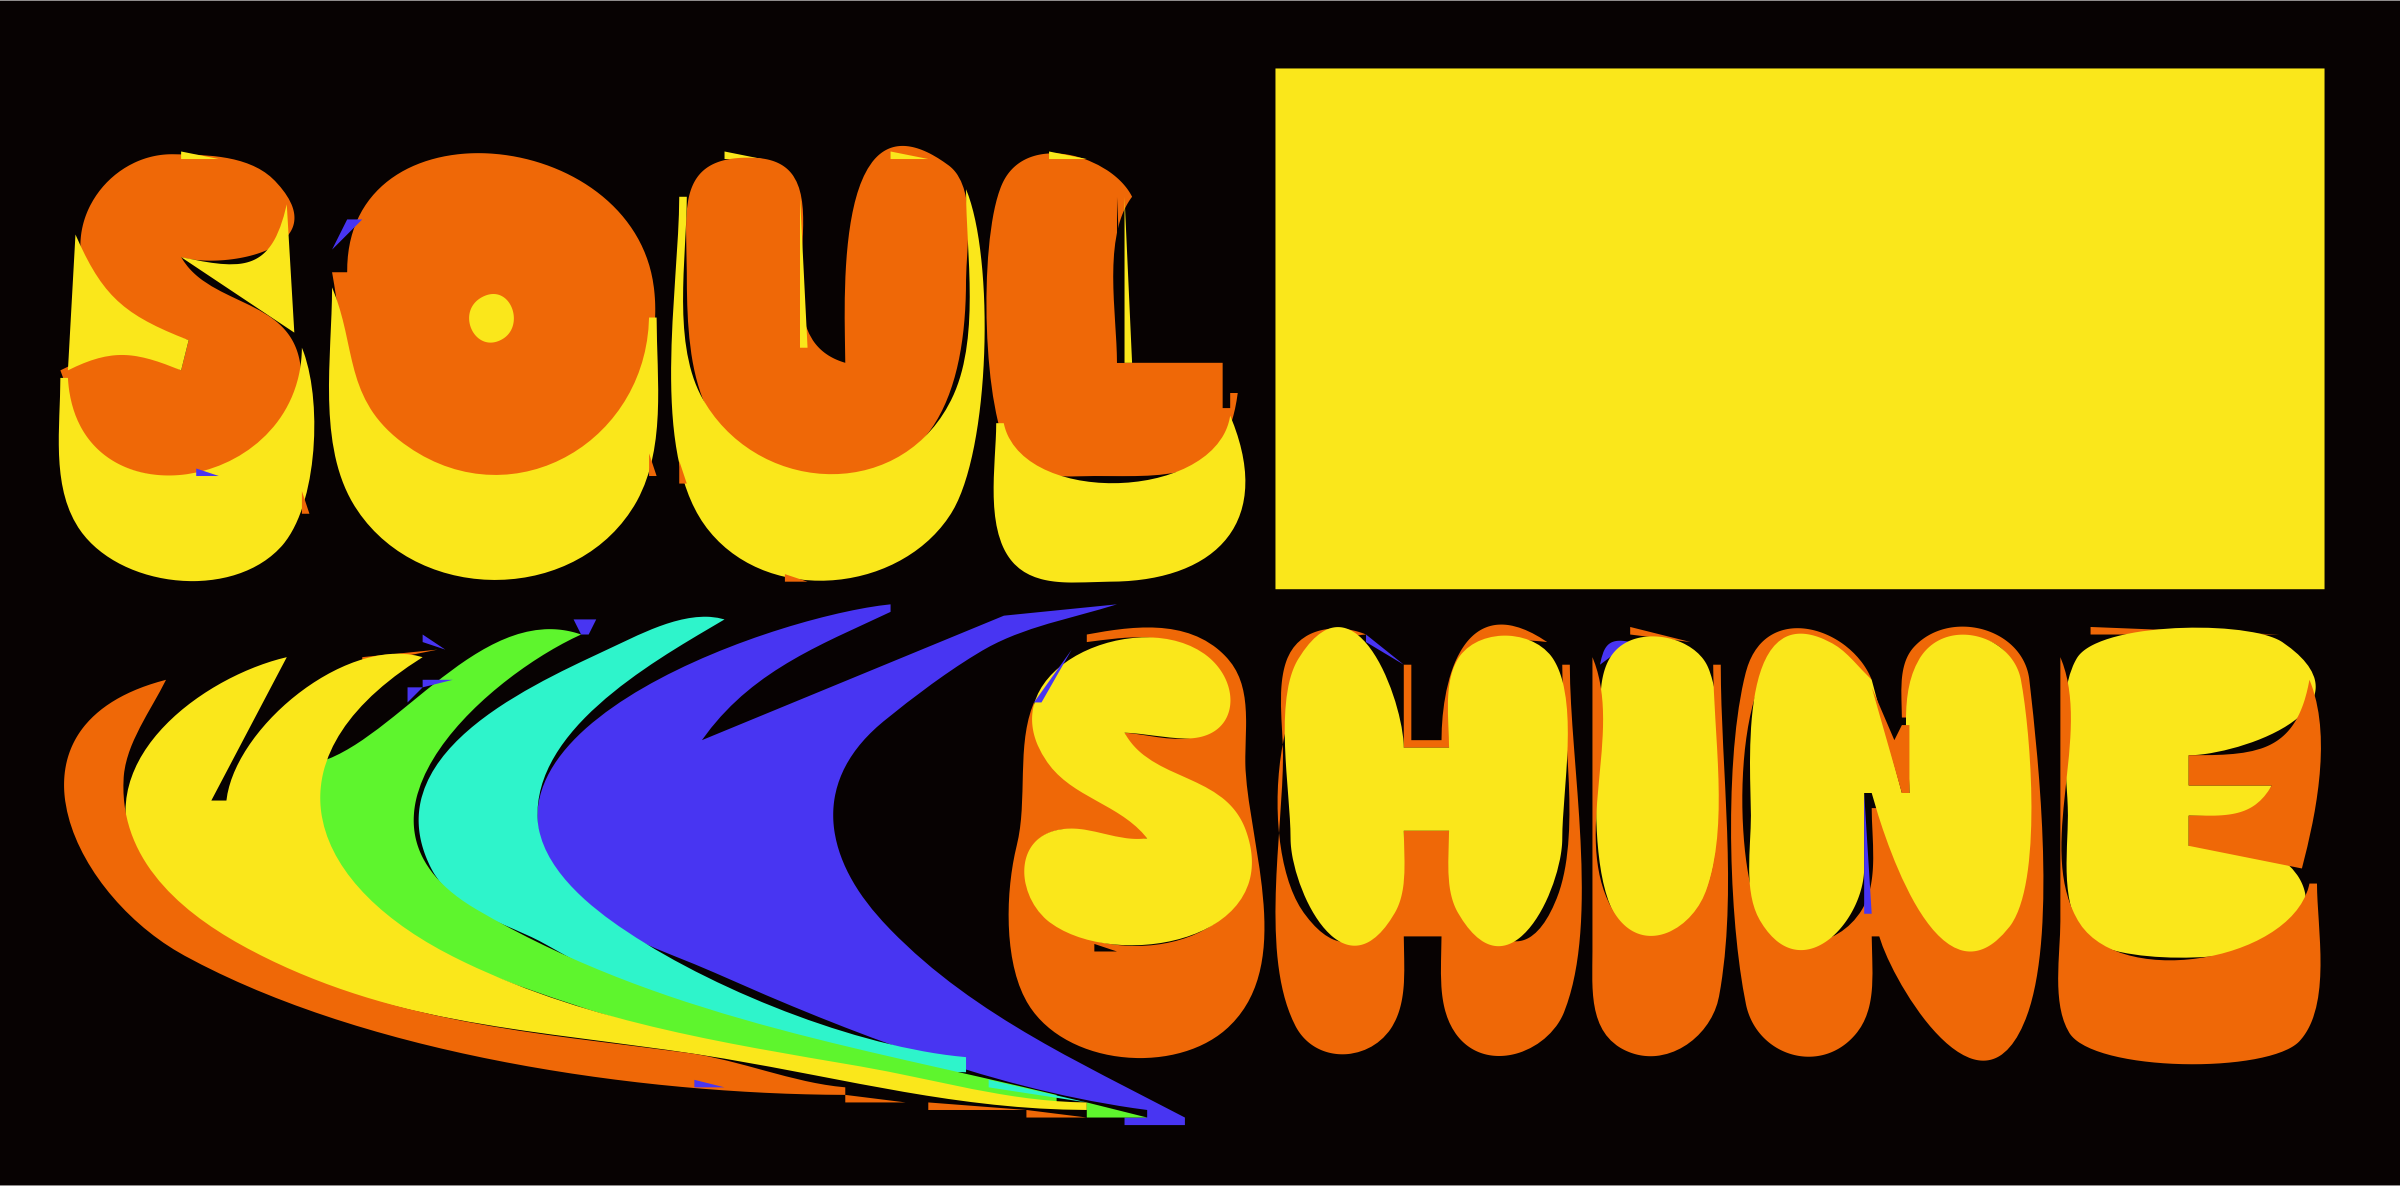 SOUL SHINE SIGN by themidnyteryder83